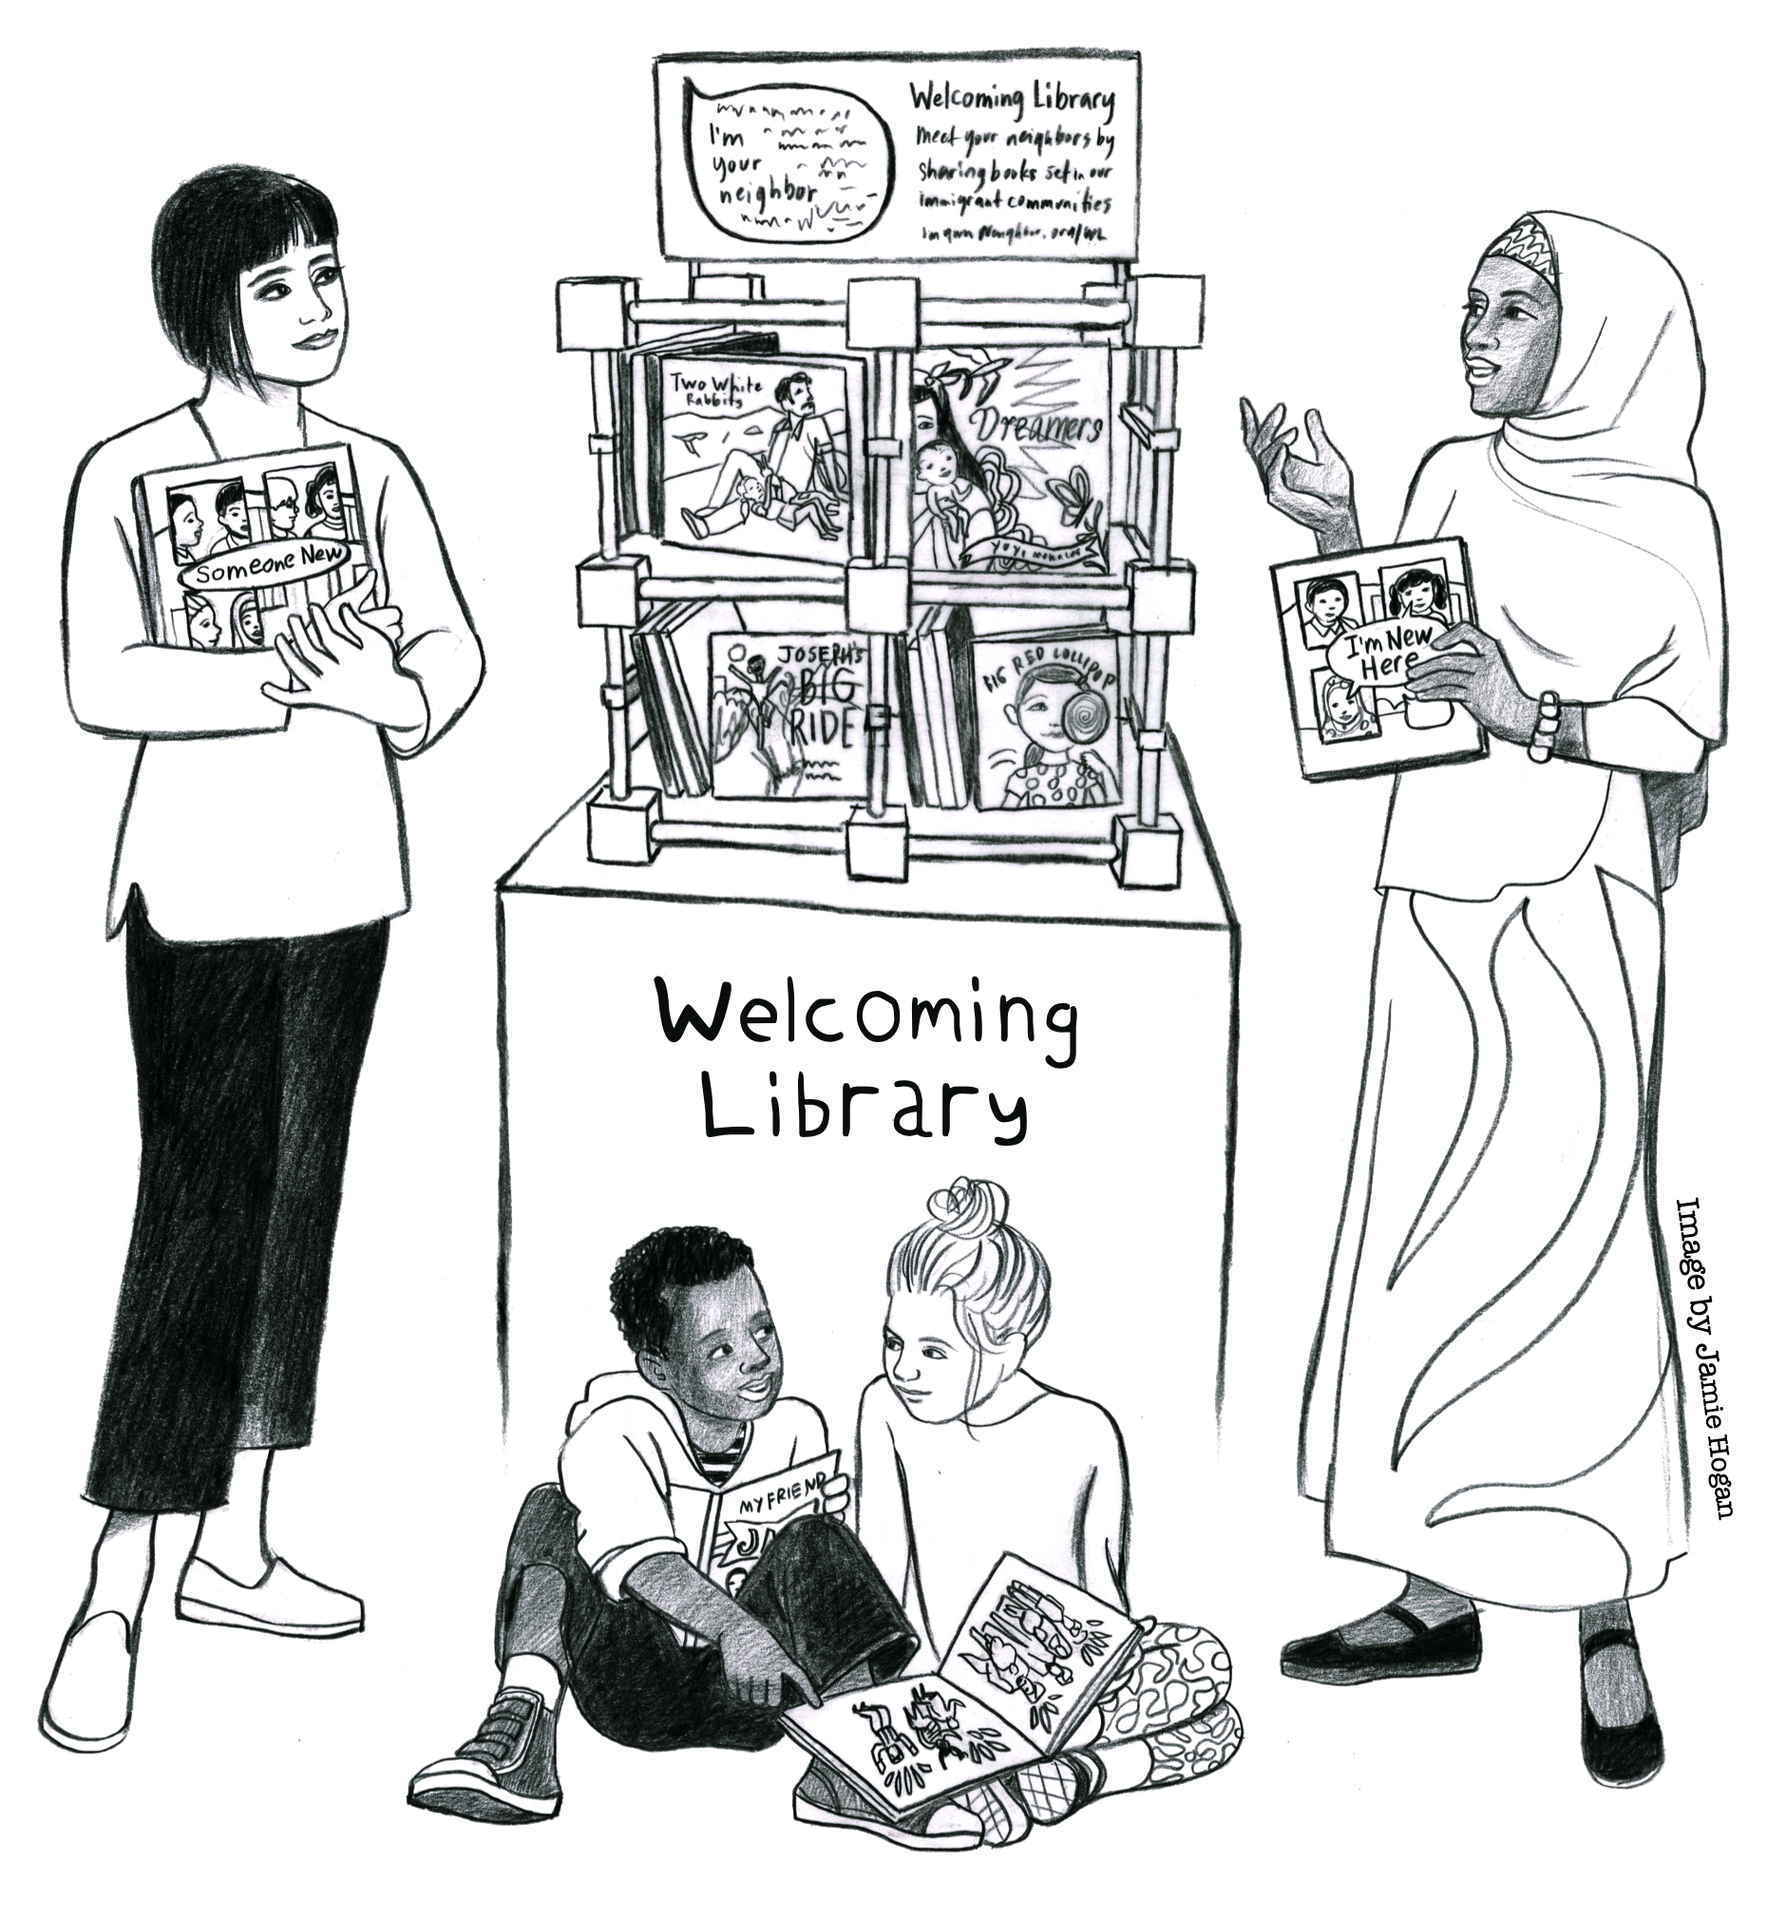 Donate a Welcoming Library image